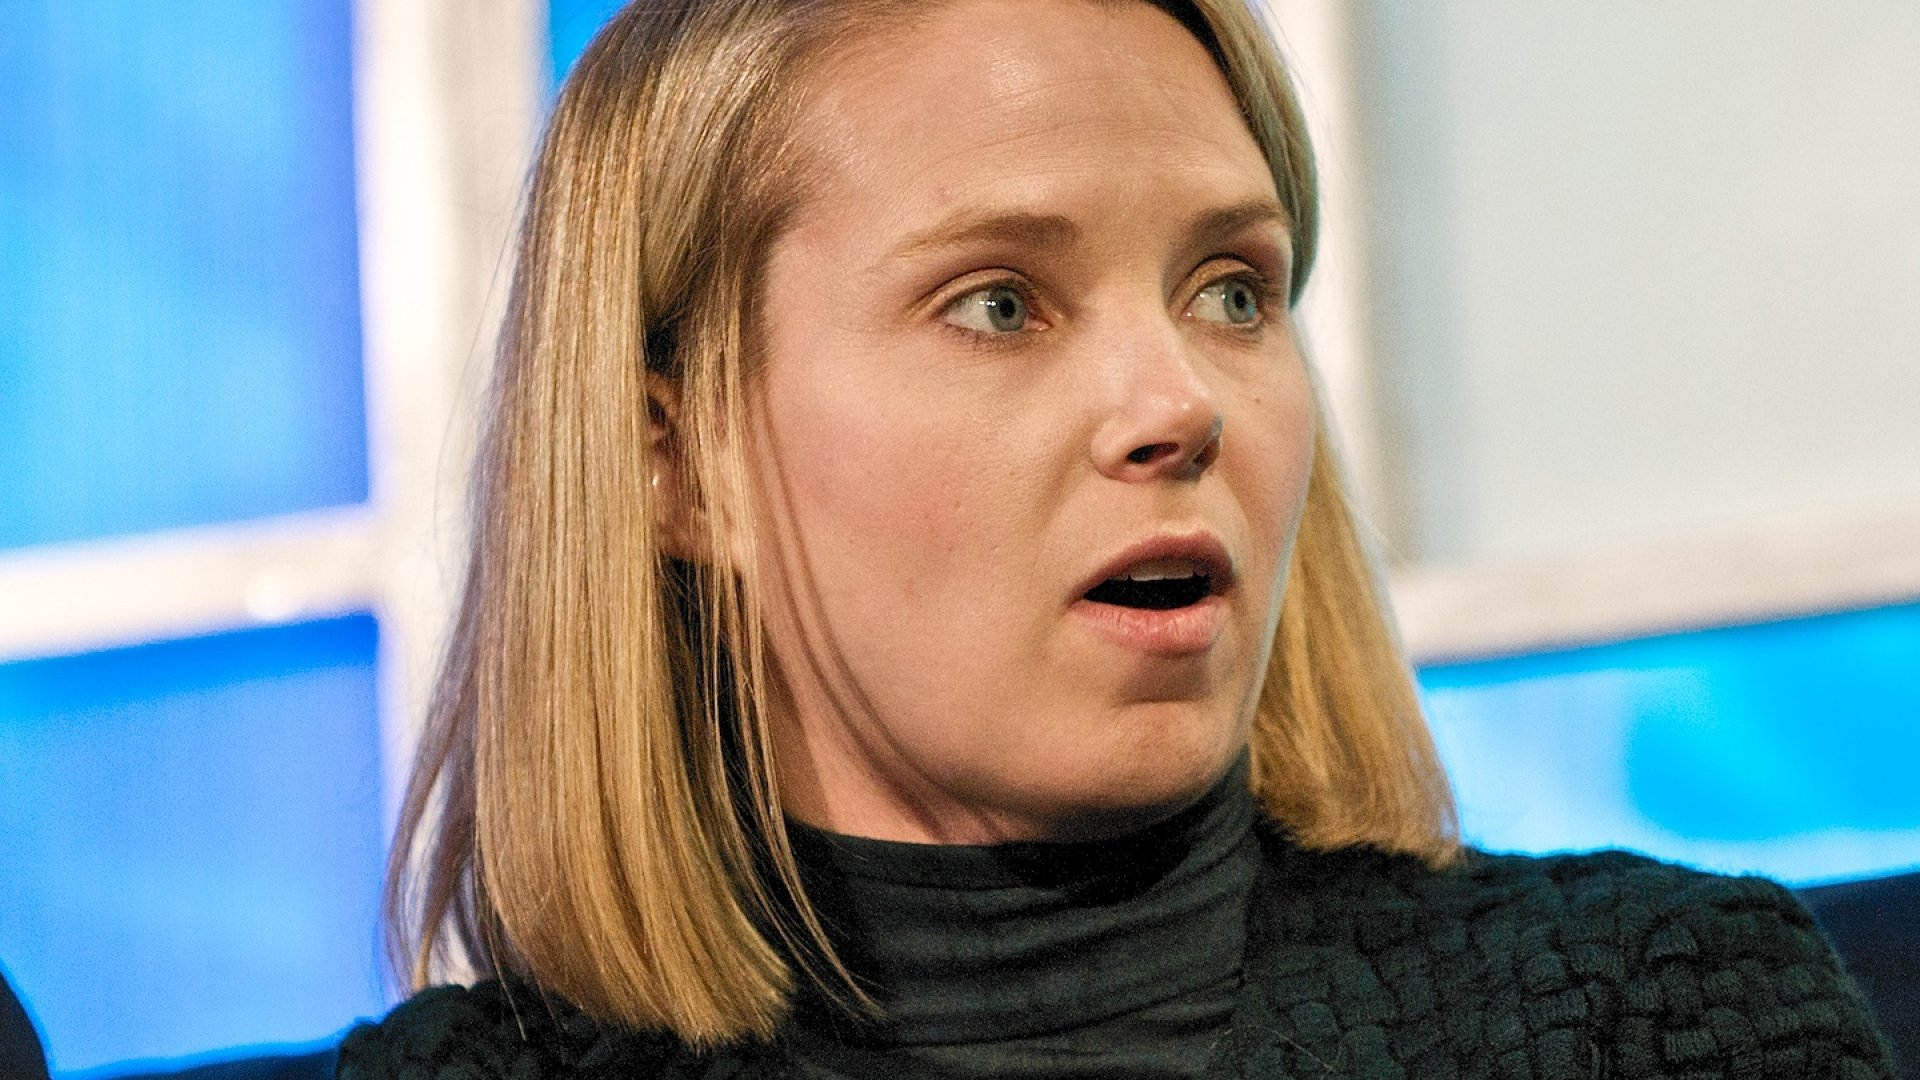 Why I Feel Sorry for Marissa Mayer's Baby